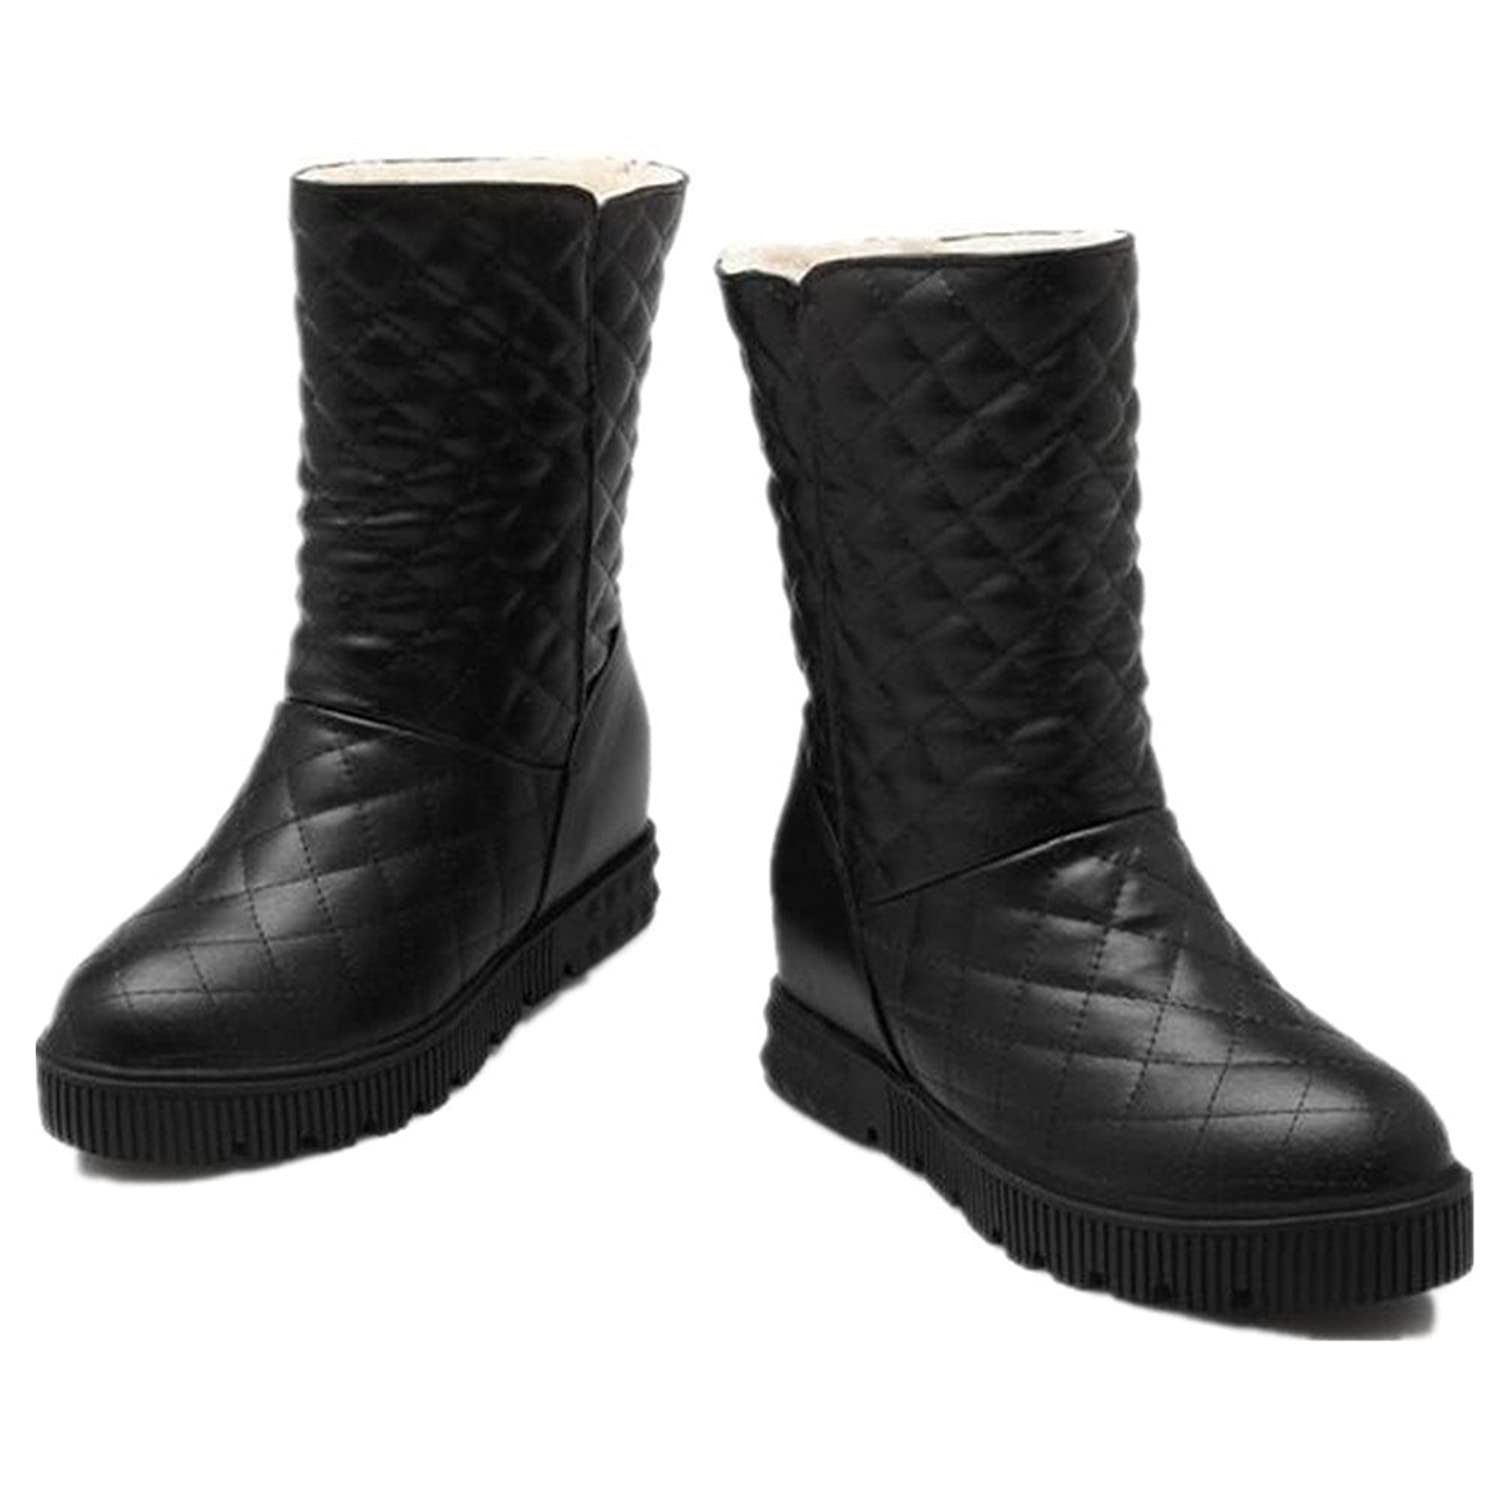 Women's Mid Calf Slip on Snow Boots PU Leather Winter Snow Waterproof Thick Faux Fur Lined Warm Rain Skiing Boot